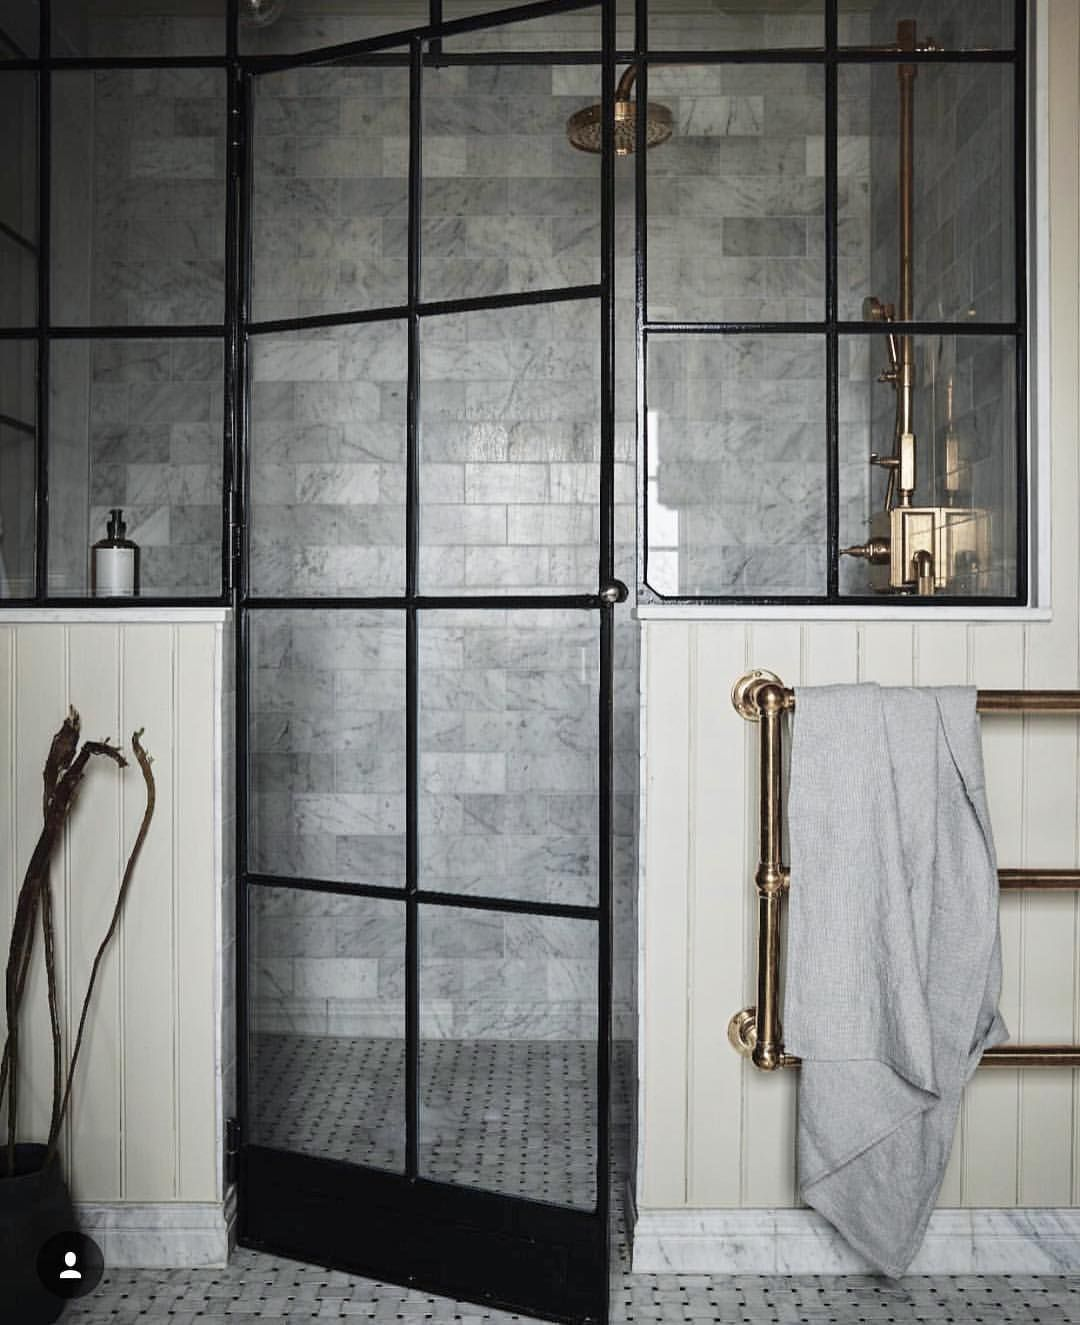 Doors Of Stone Will Never Be Released : doors, stone, never, released, Still, Frenzy, #clientburoundtwo, Realized, Thing..., Steel, Doors, Shower,…, Amber, Interiors, Bathroom,, Doors,, Bathroom, Inspiration